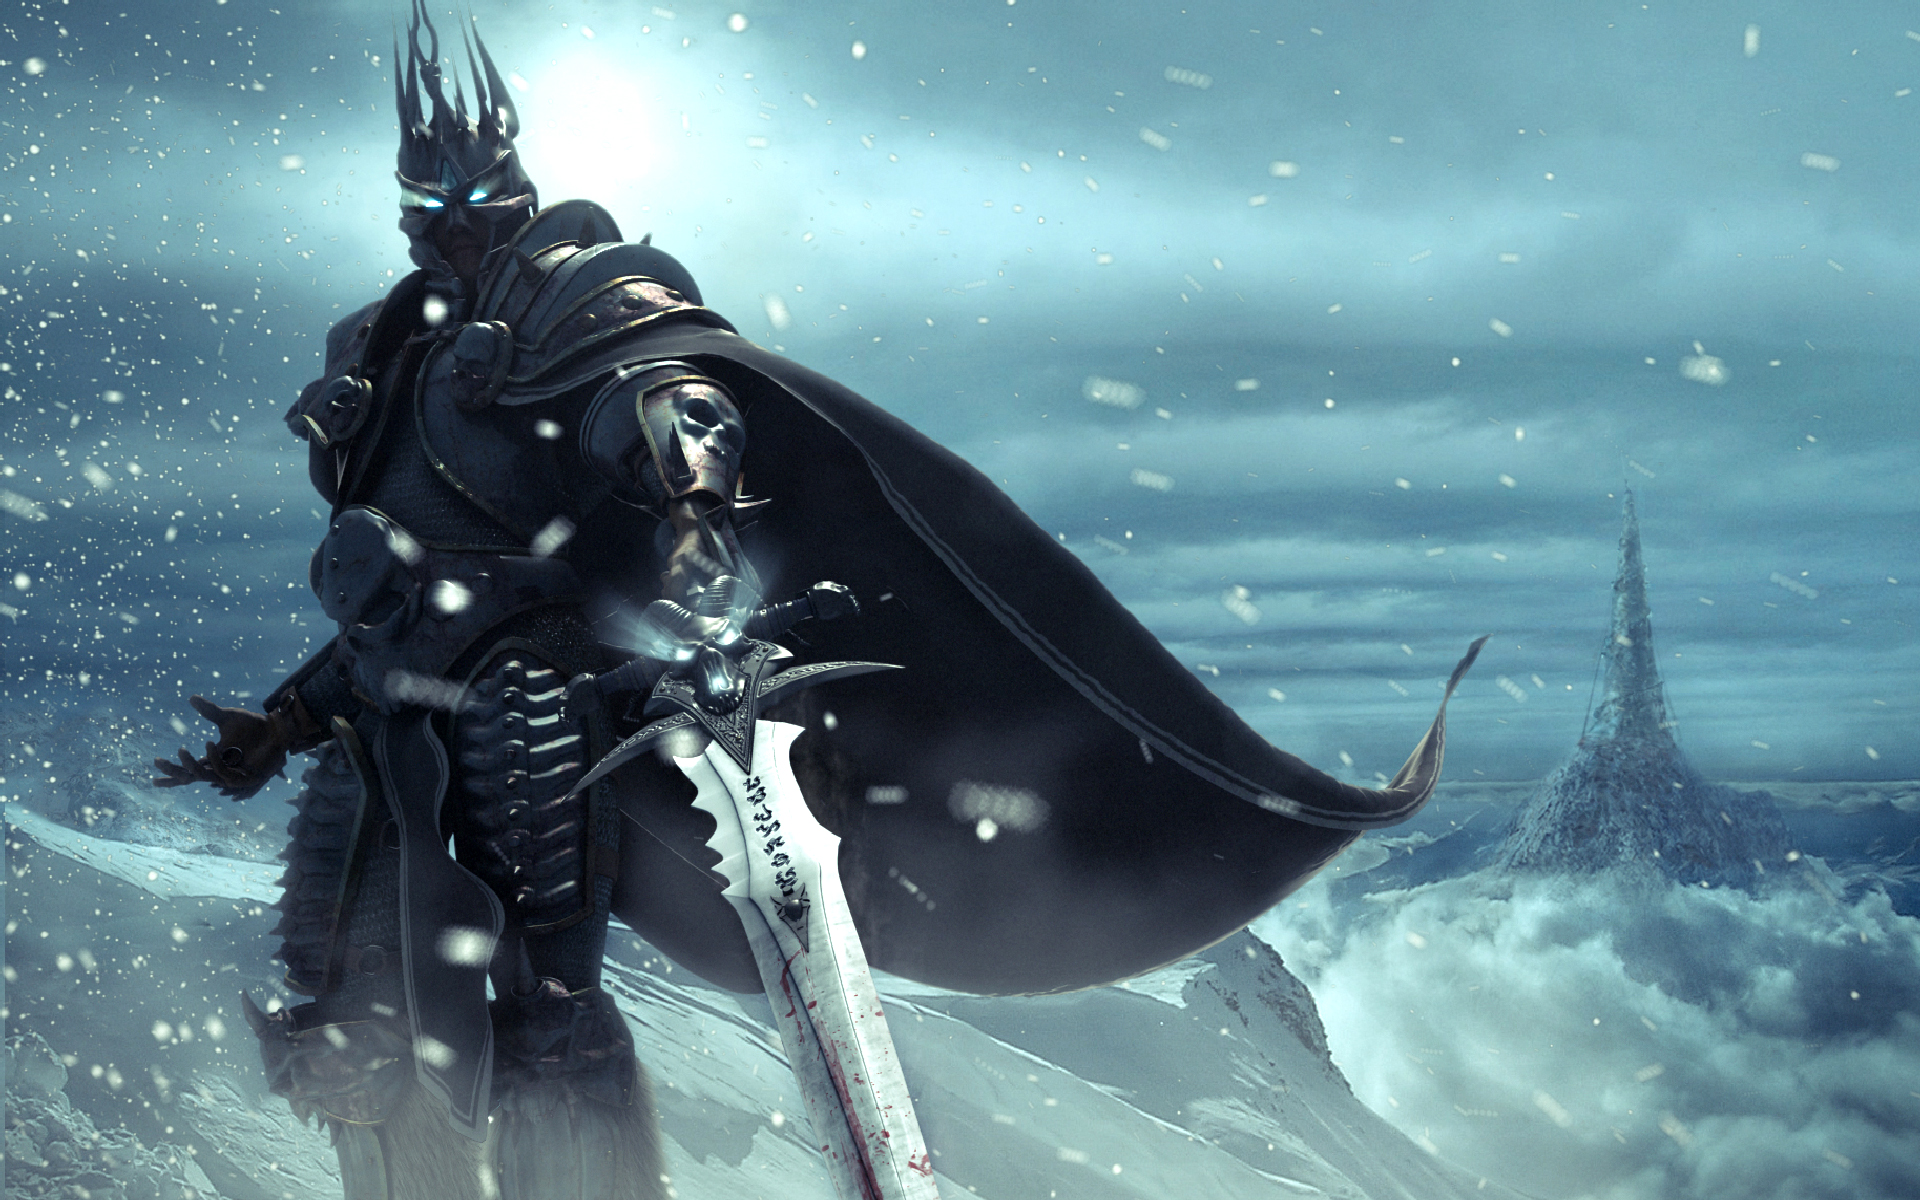 Videojuego - Warcraft  - Lich King - Death Knight - Arthas Fondo de Pantalla